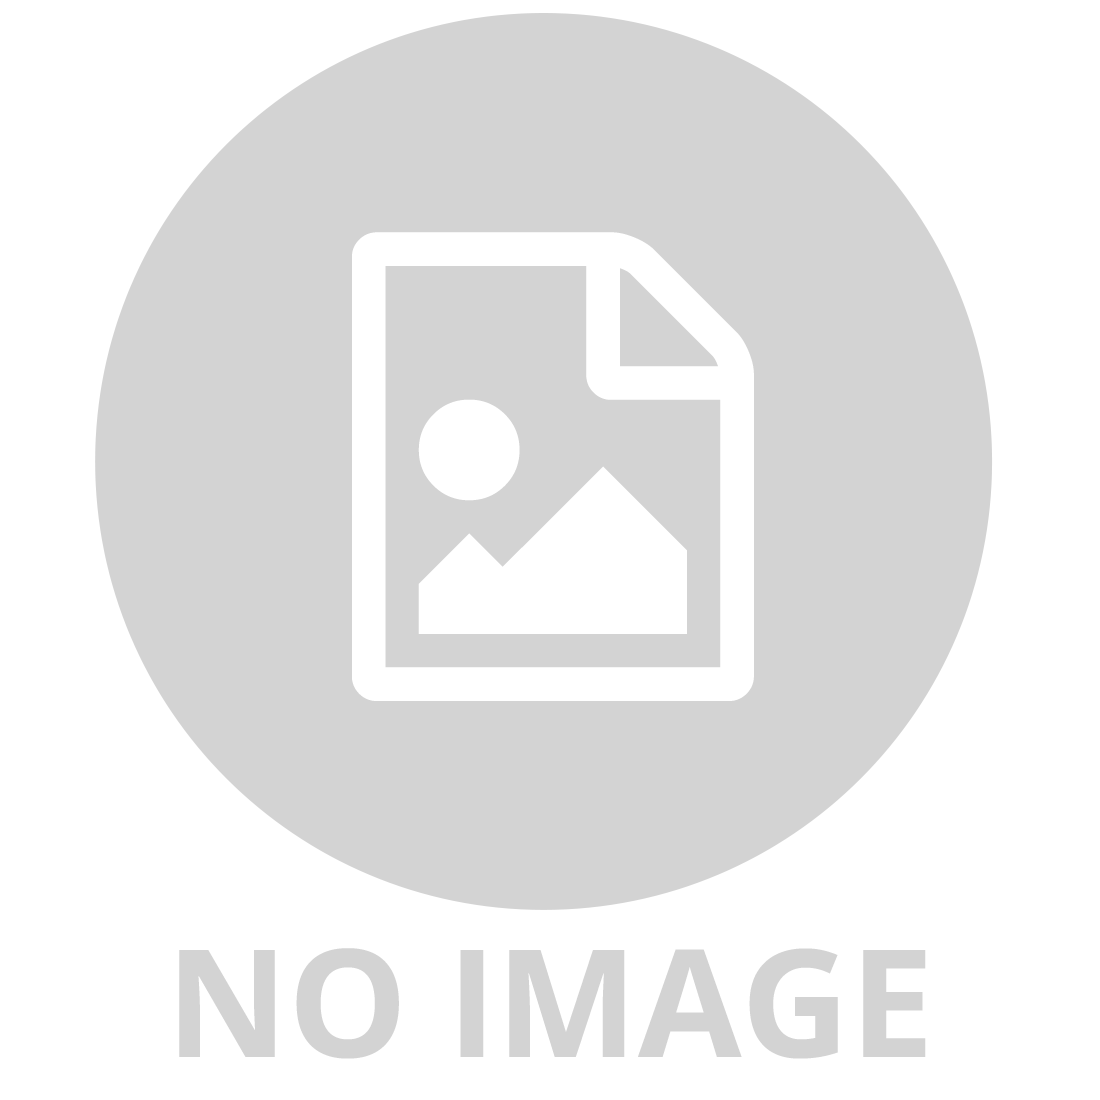 RAZOR A5 DELUXE SCOOTER SILVER